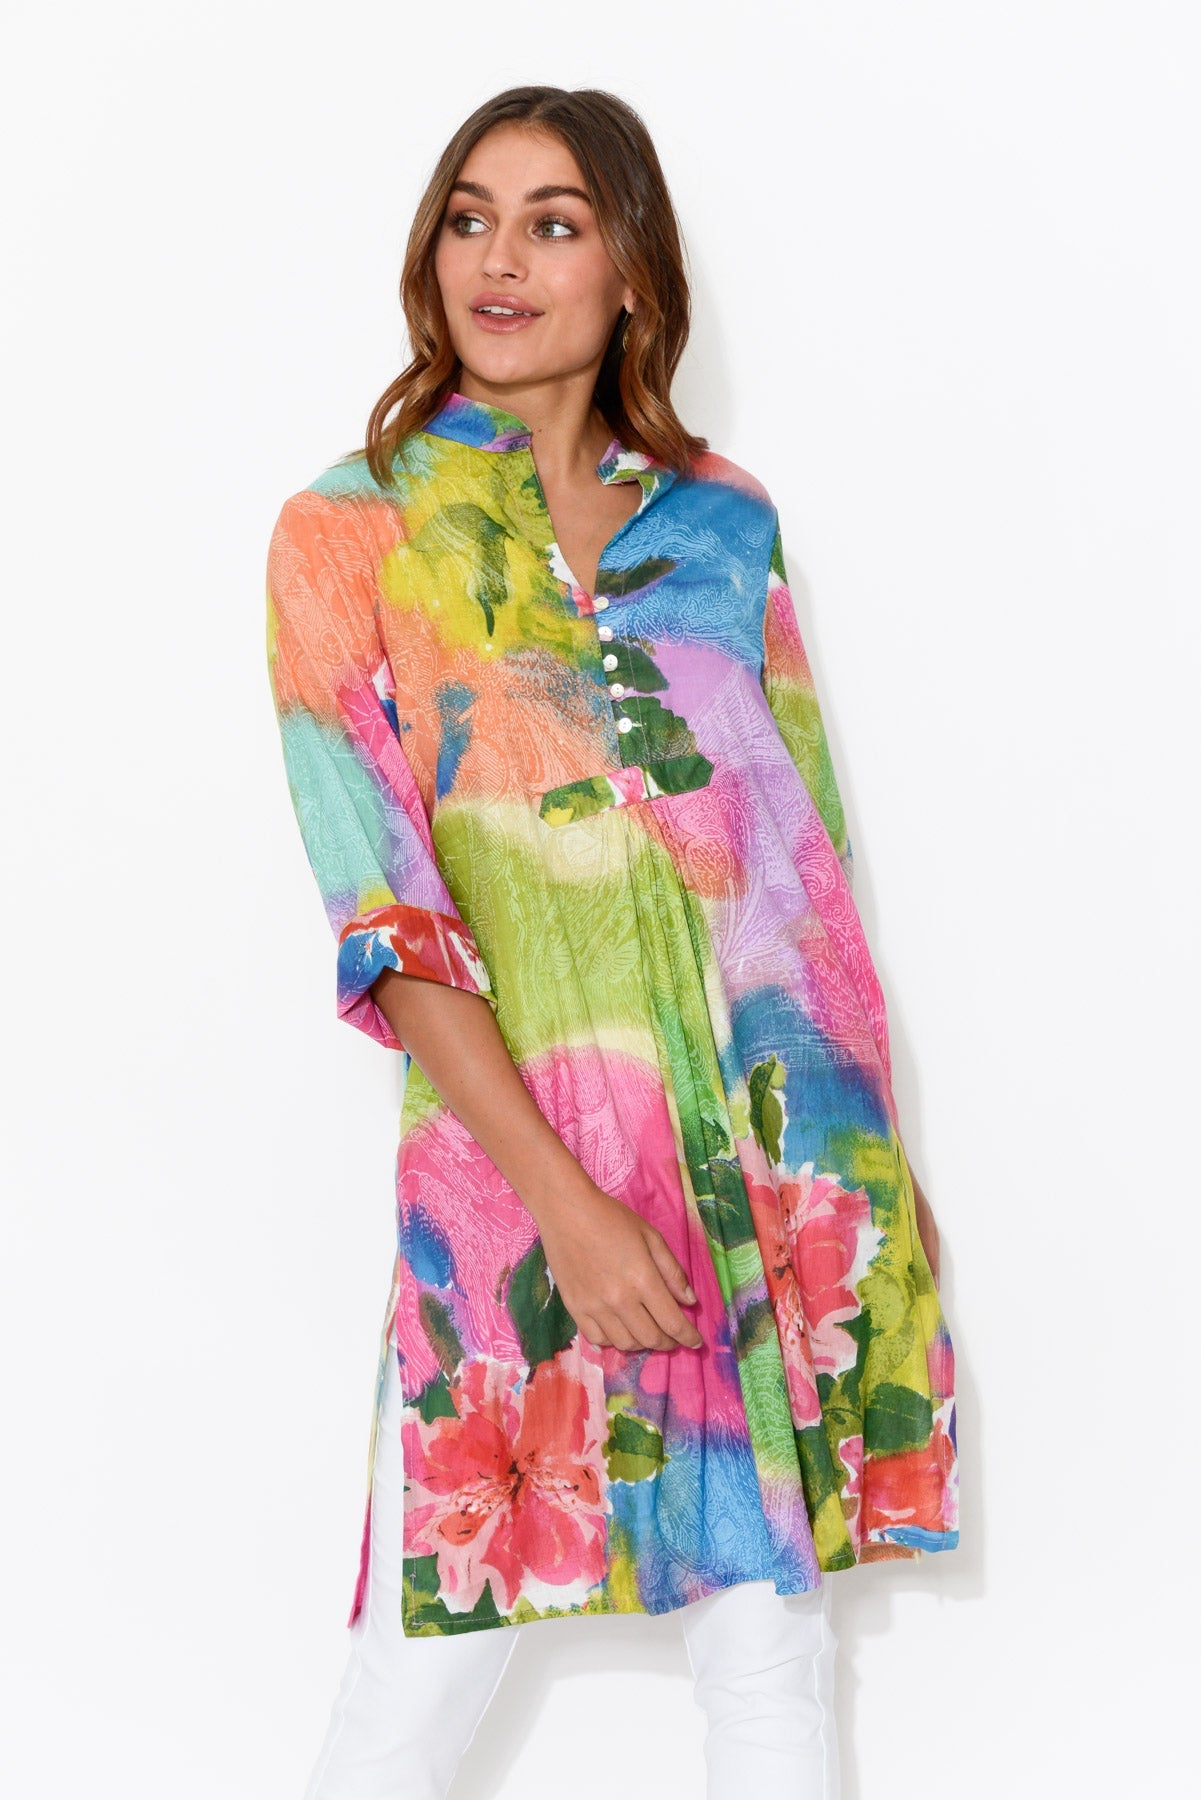 Malolo Pink Peony Sleeved Cotton Dress - Mozaic - Blue Bungalow Online